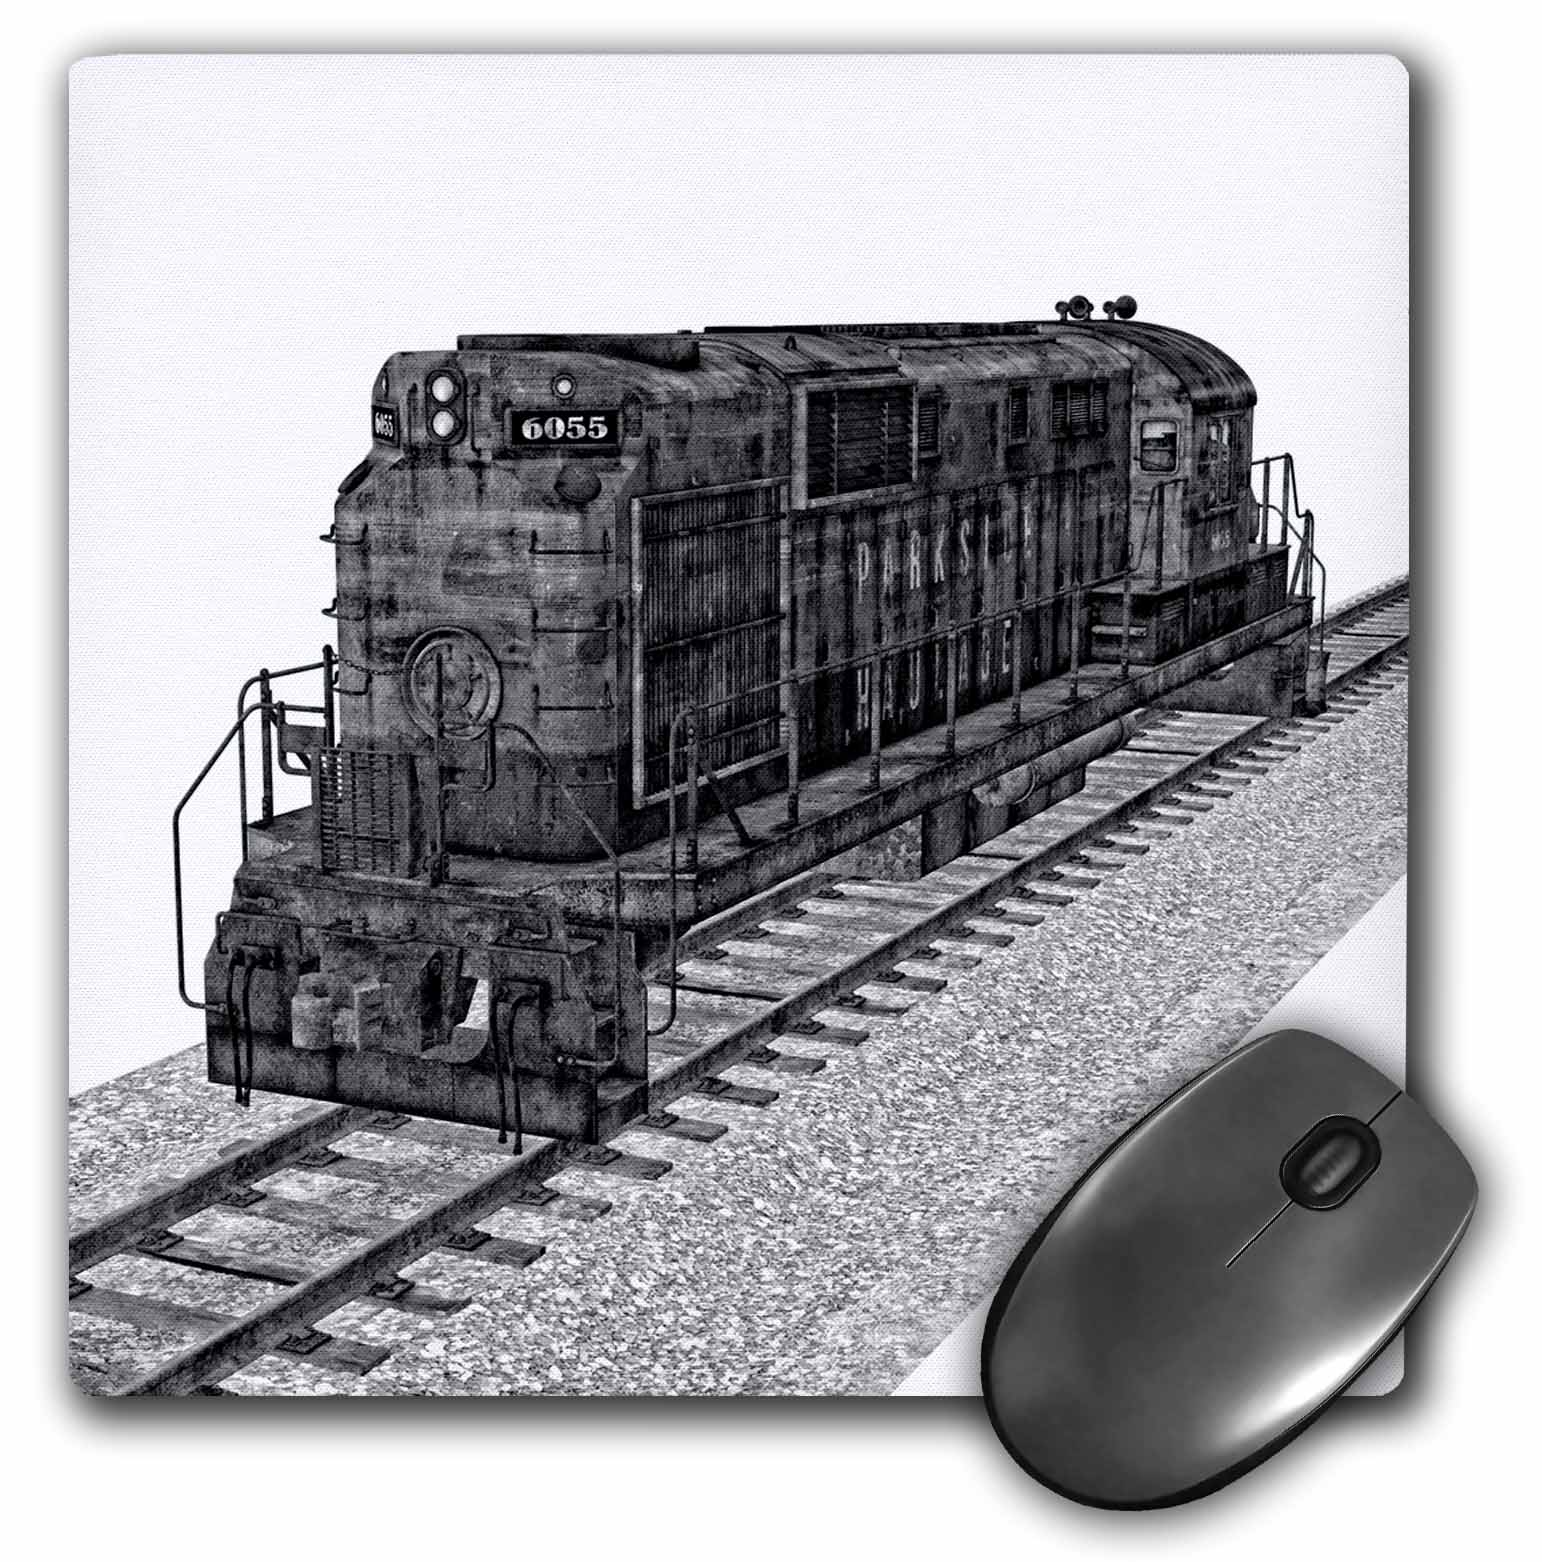 3dRose - Boehm Graphics Train - A cargo car seen from the side - Mouse Pads at Sears.com